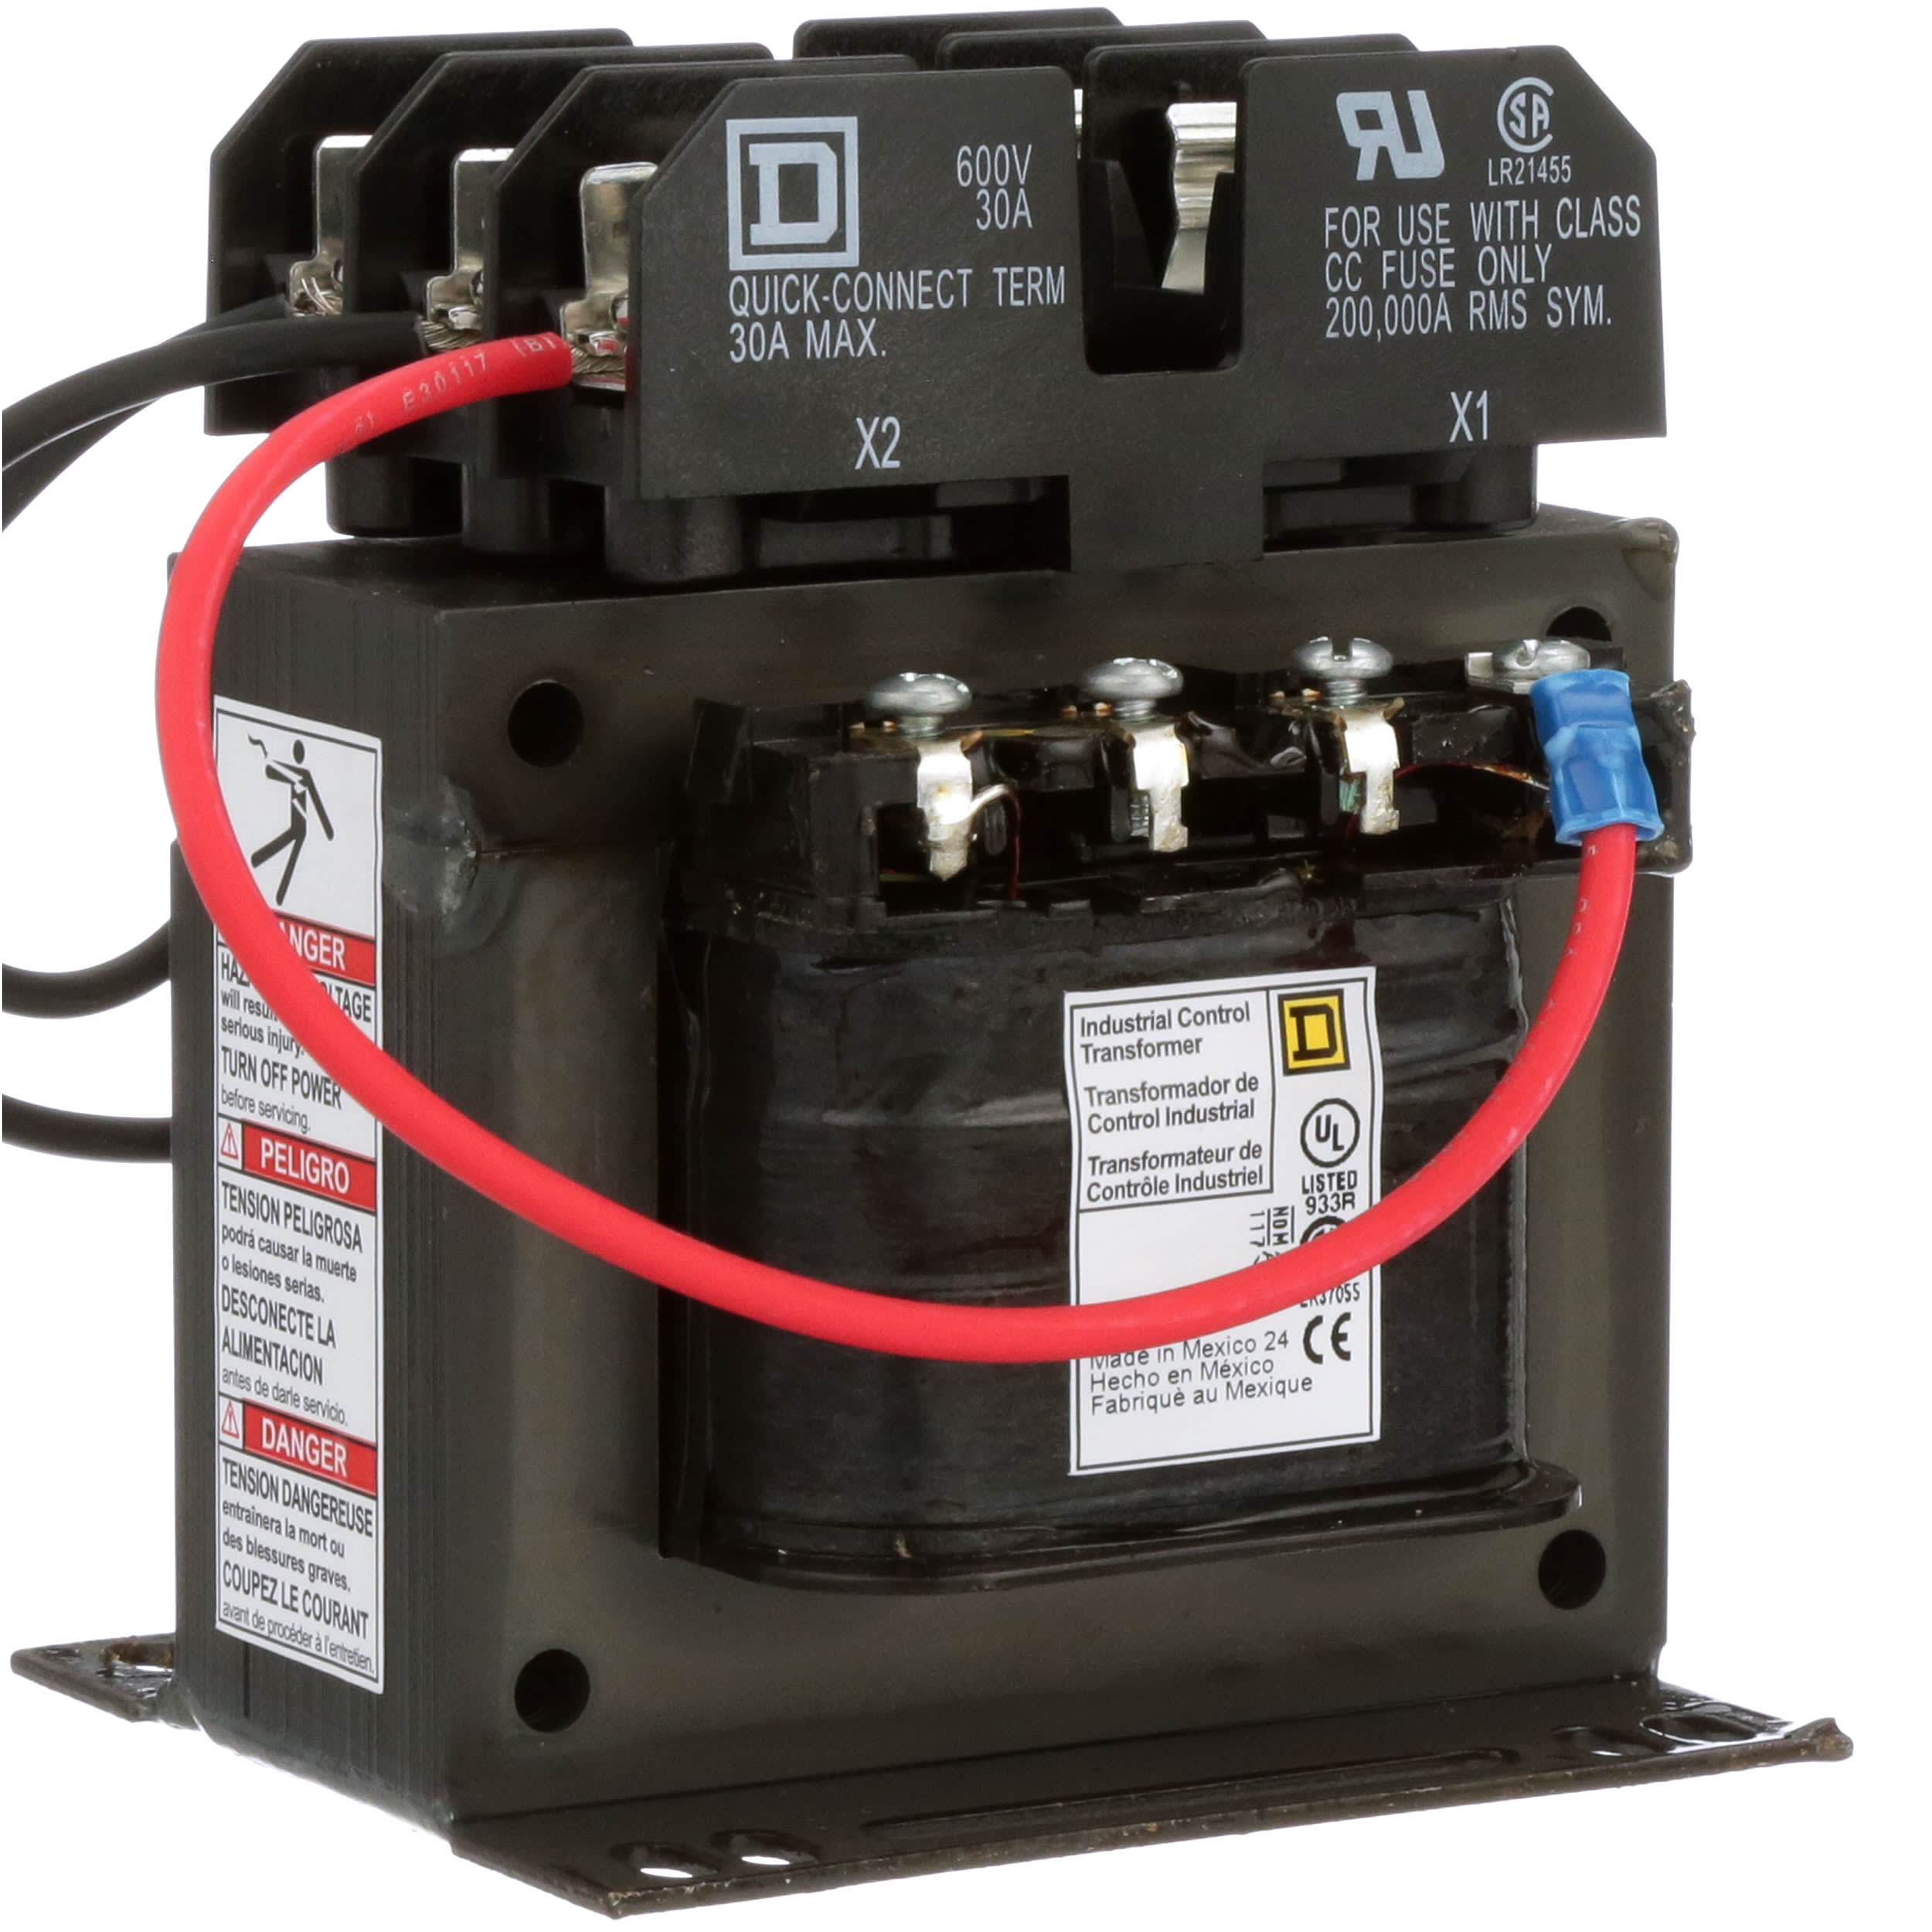 Square D 9070tf150d1 Transformer 150va 240 480vac Primary 120vac Secondary Panel Mount 9070 Series Allied Electronics Automation